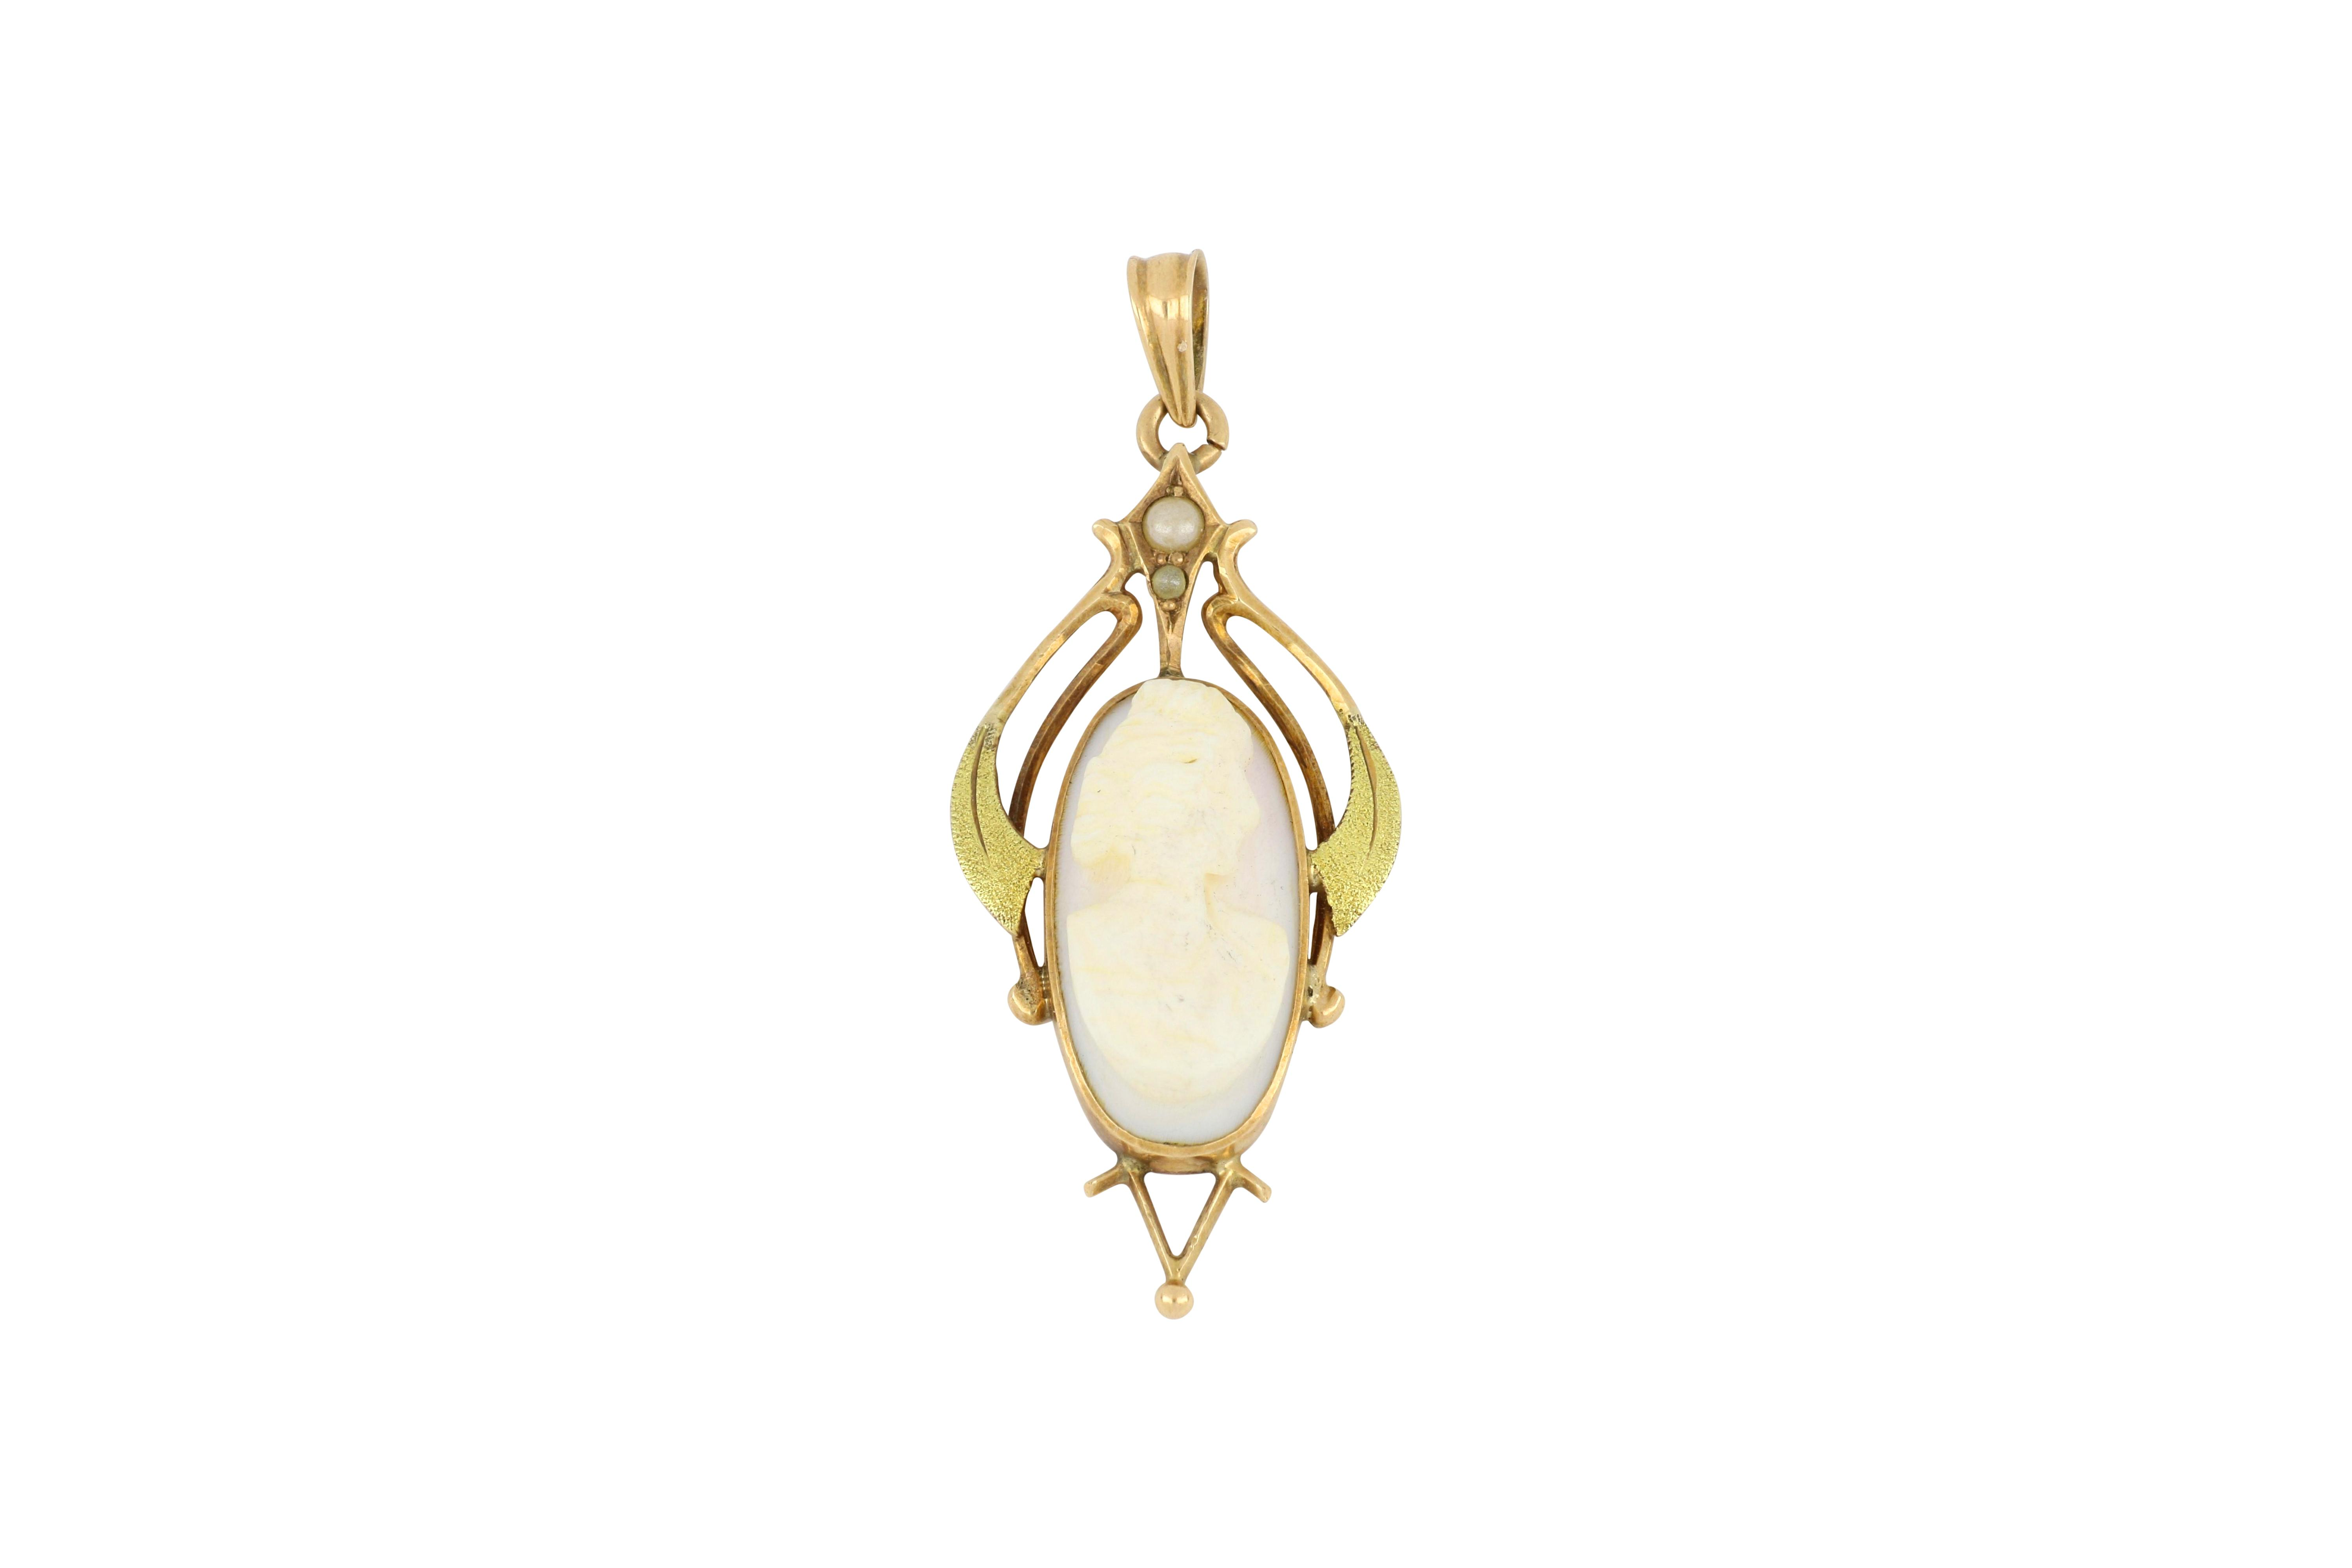 Antique 10ct gold cameo shell pendant